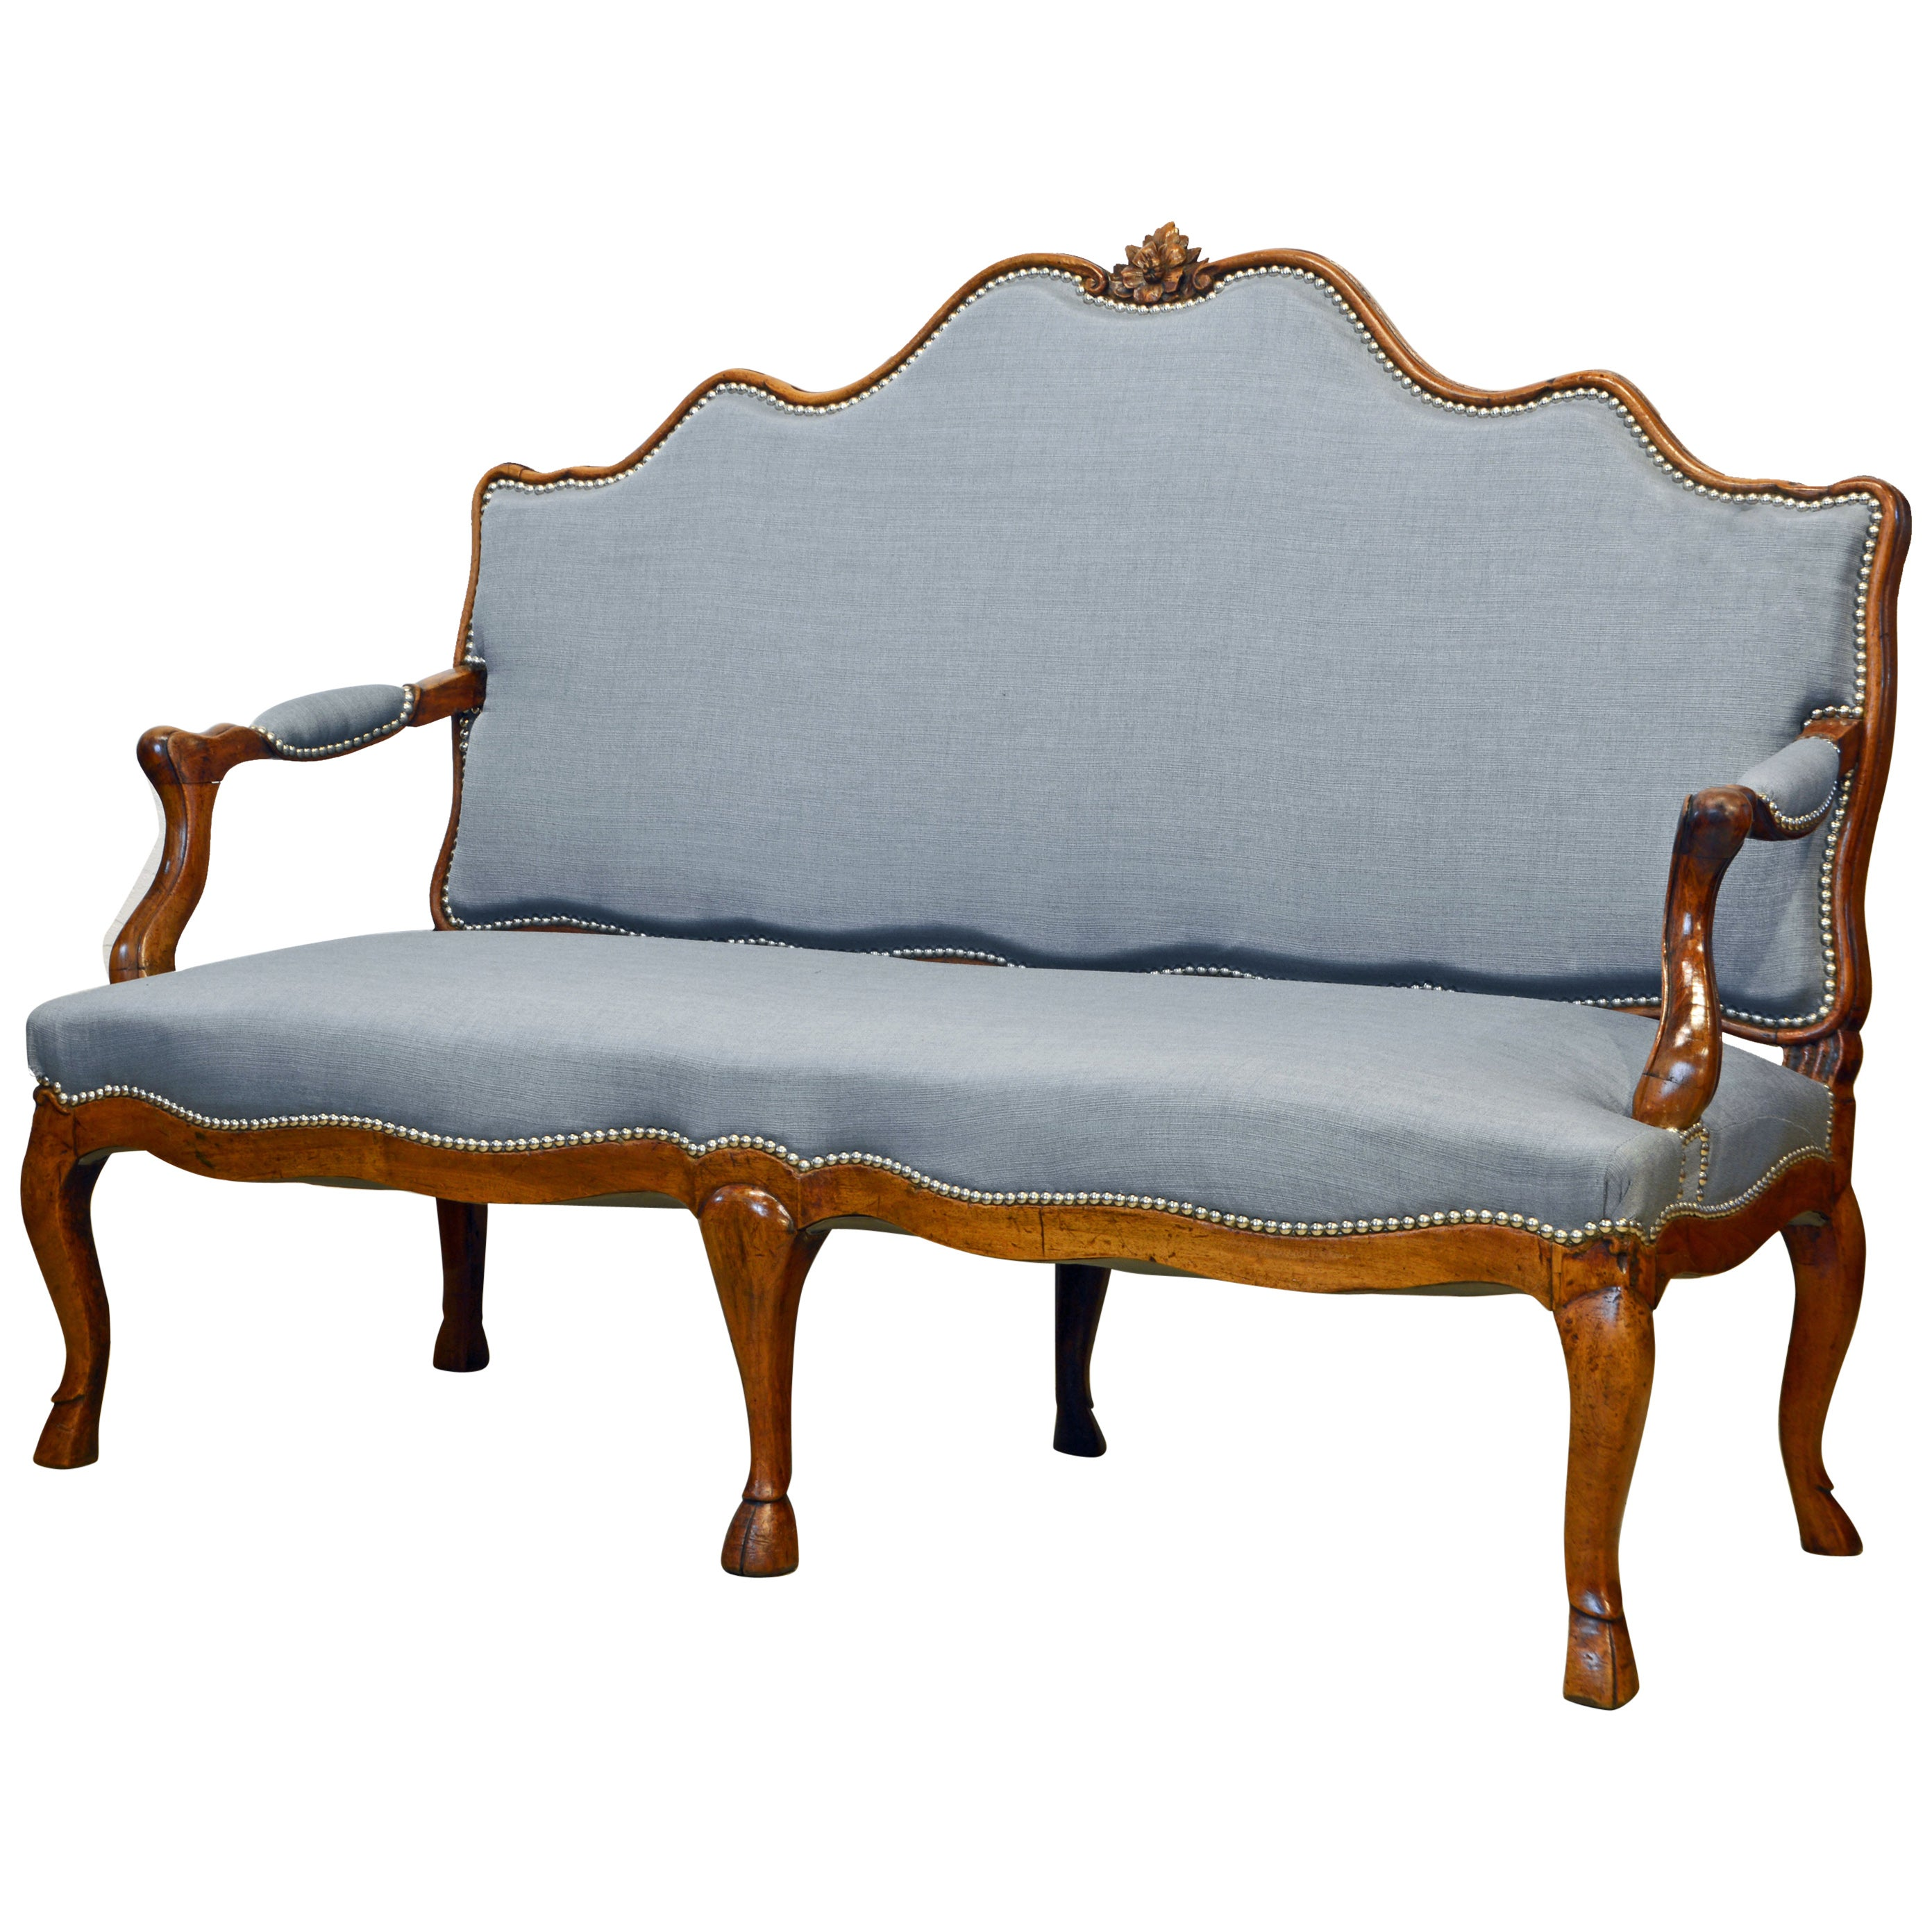 French Louis XV Carved Walnut Canape or Settee, Lovely Form and Detail